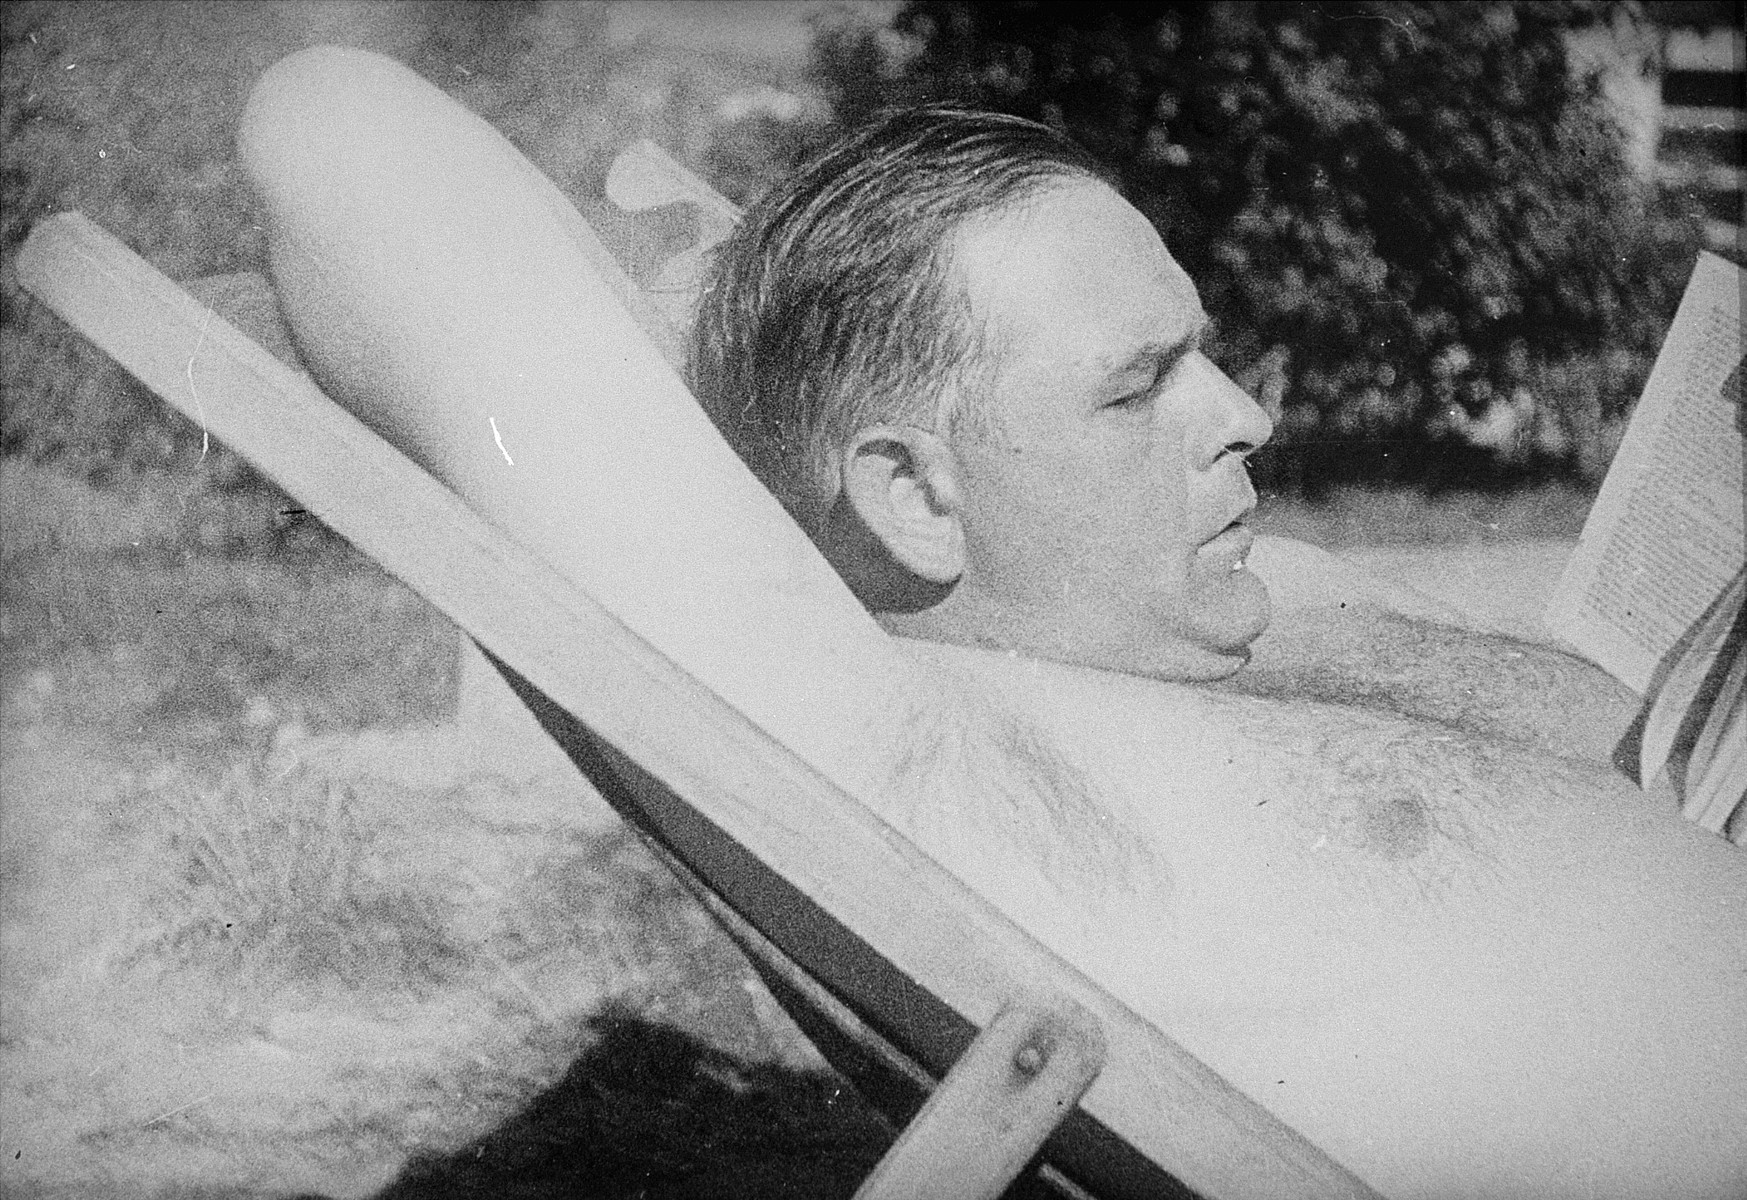 Commandant Amon Goeth reads a book while reclining in a lawn chair at his villa in the Plaszow concentration.